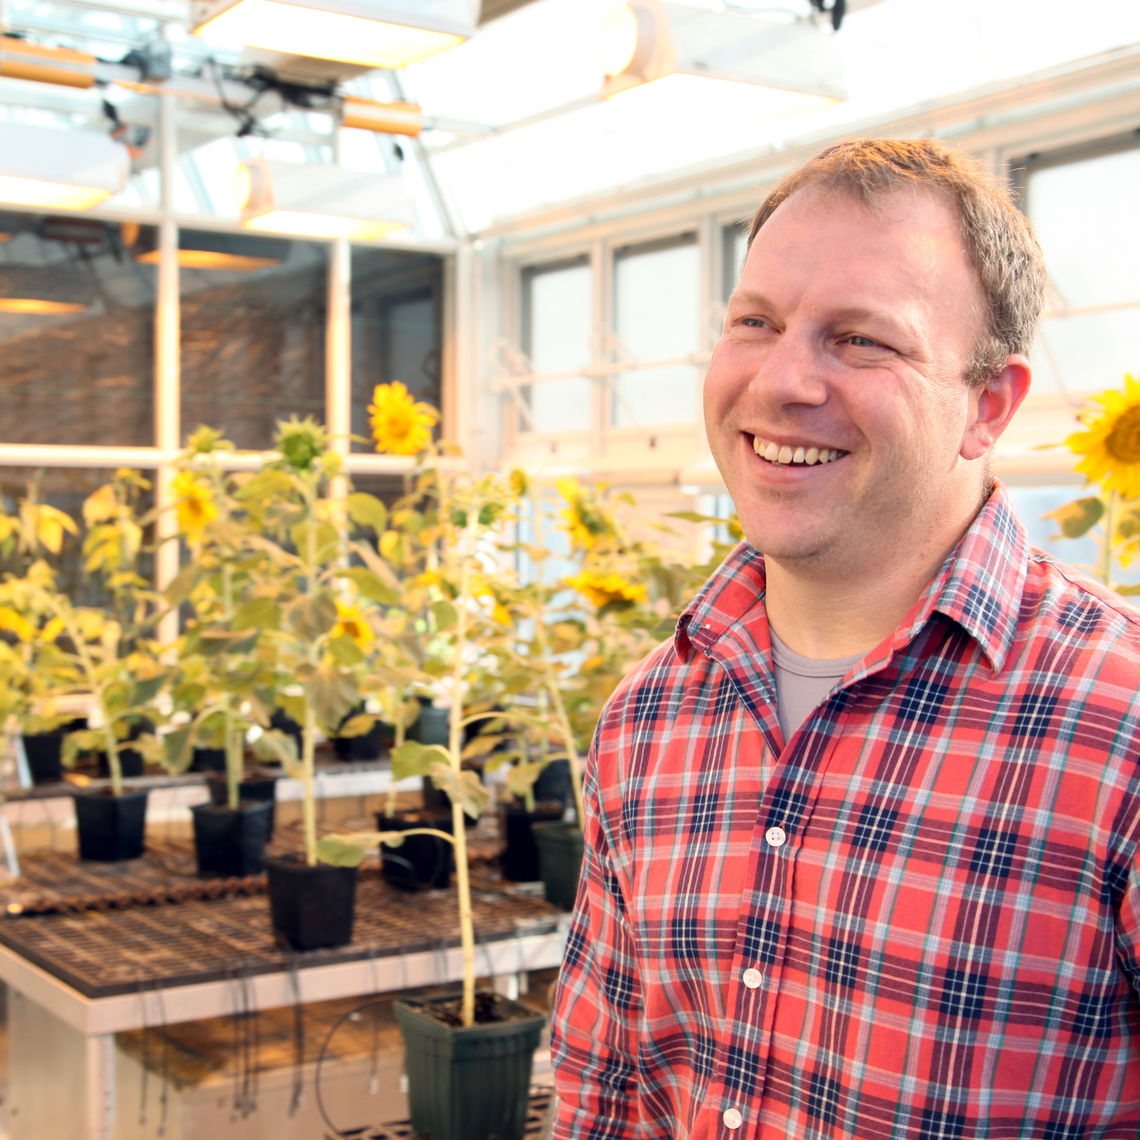 Eric Lonsdorf, professor of ecology, evolution and behavior, is a research associate in biology at F&M